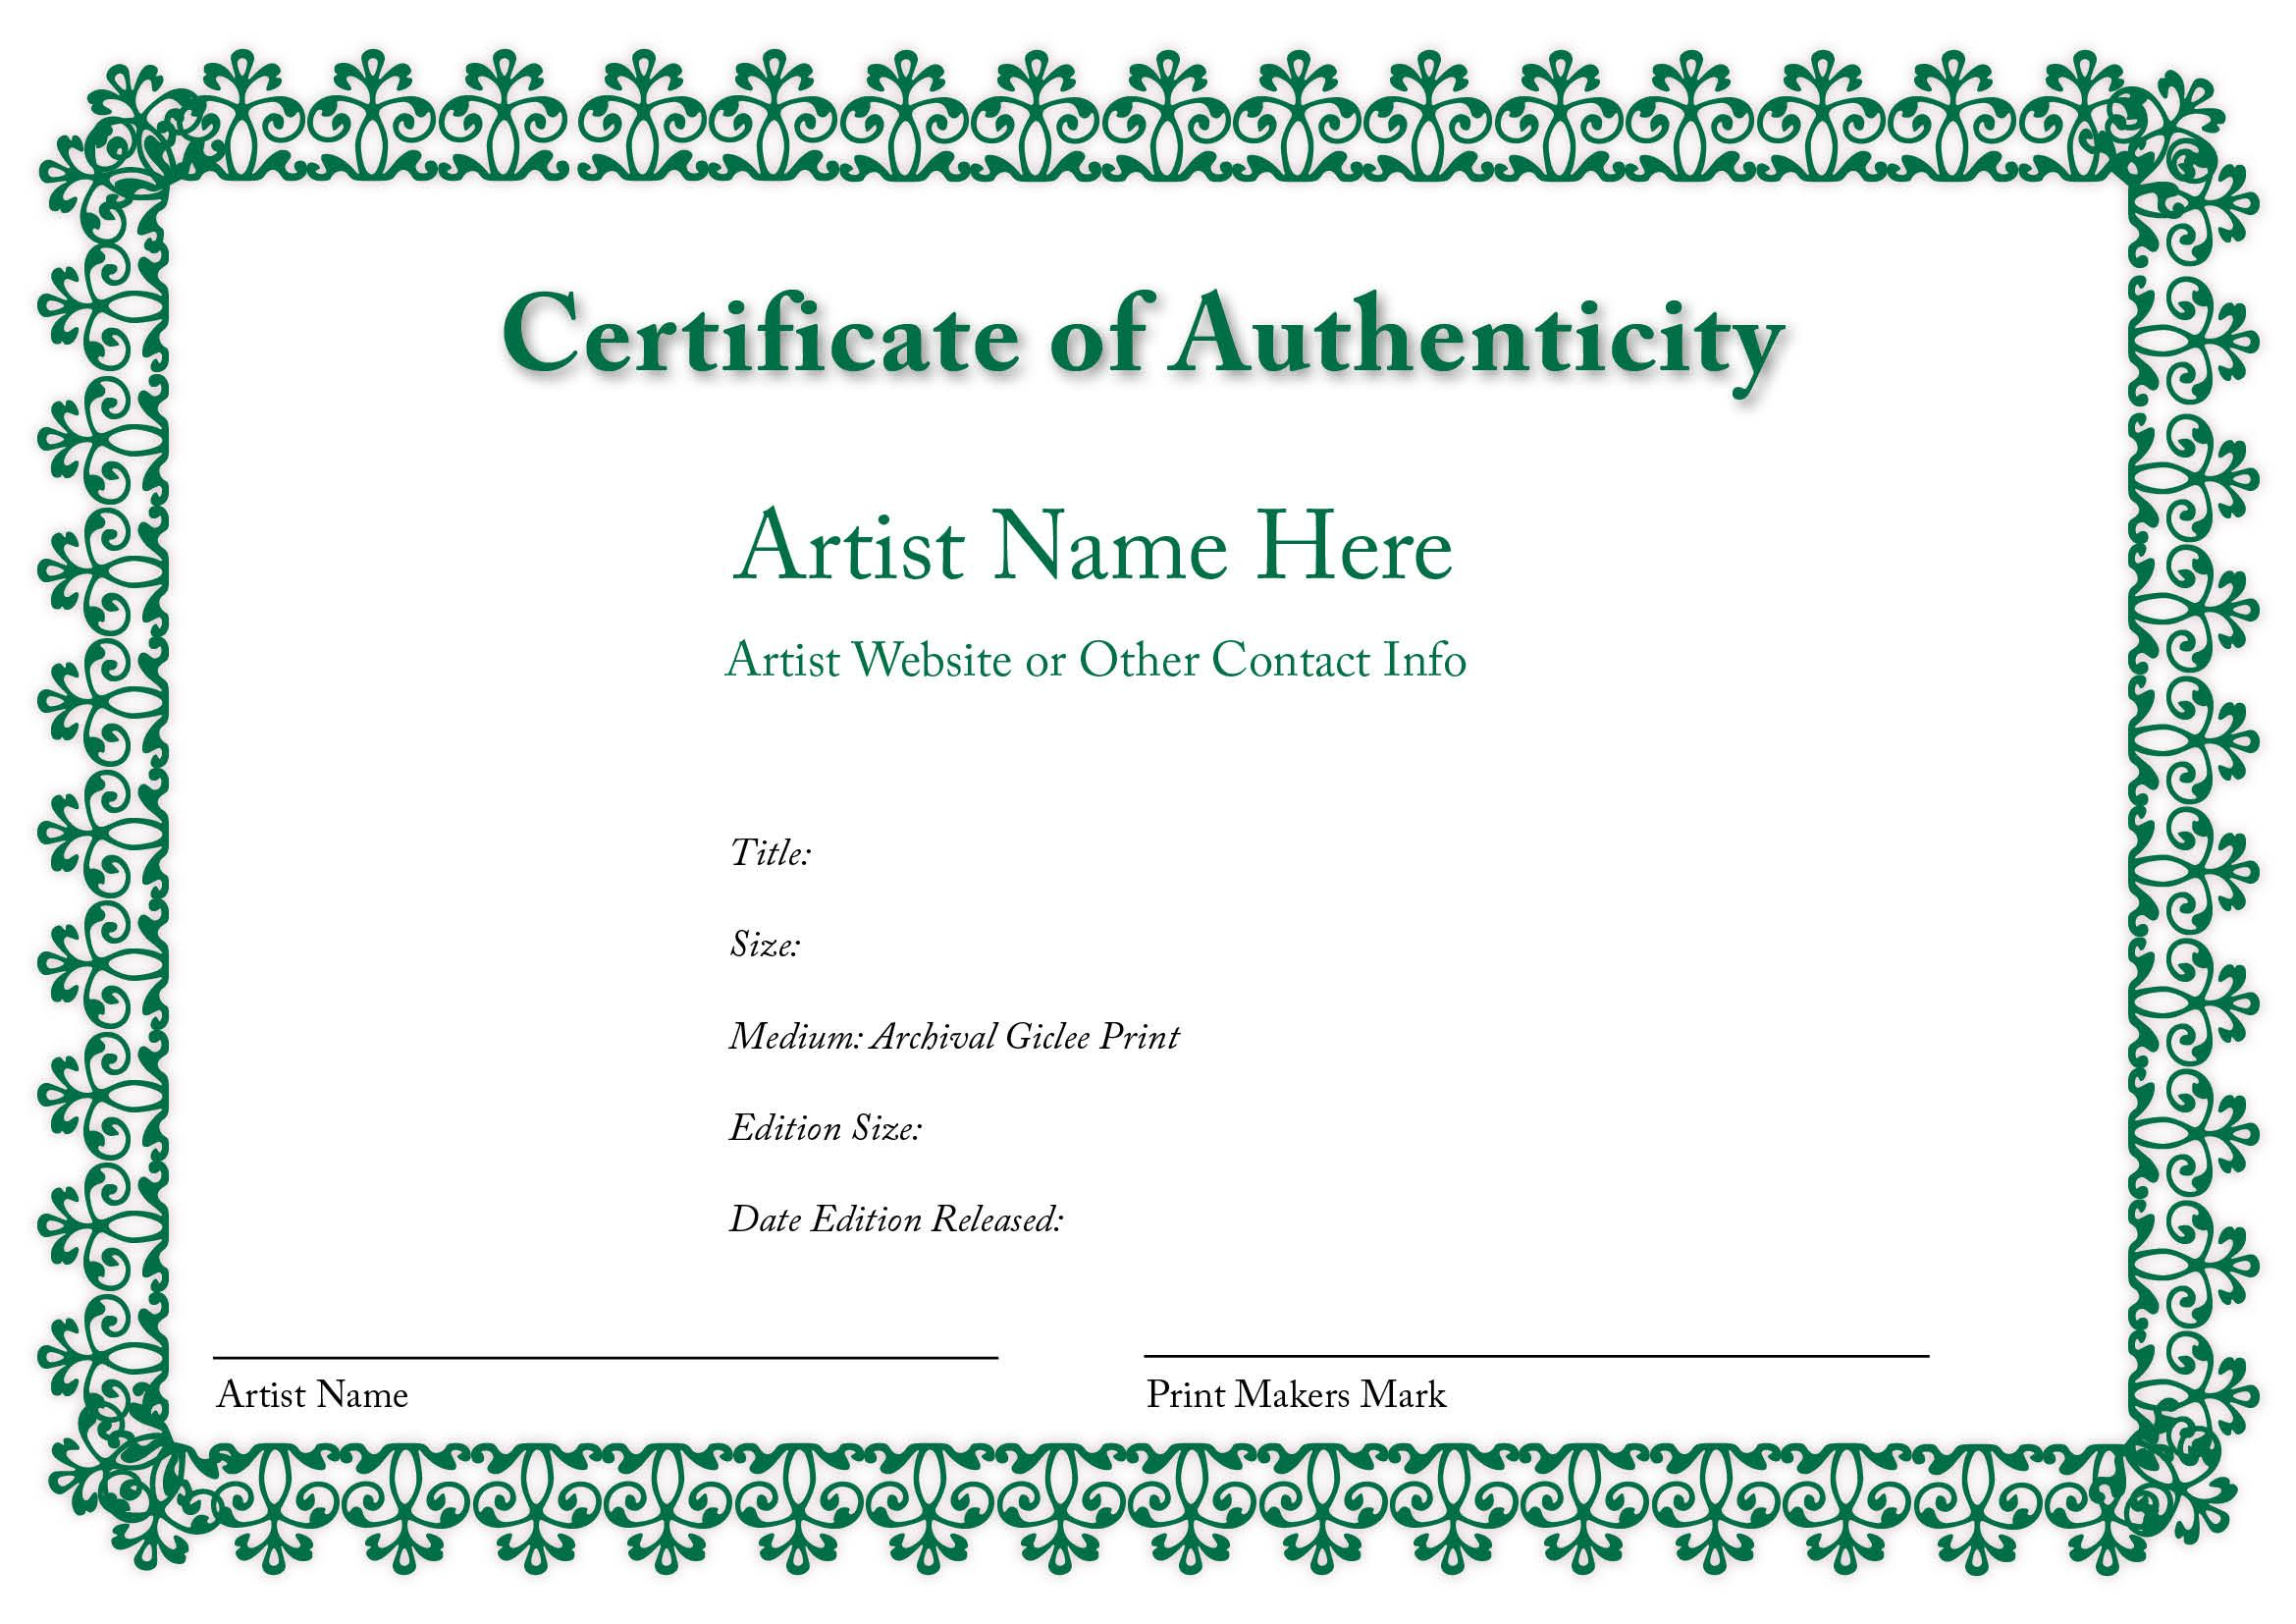 Tactueux image with regard to printable certificate of authenticity